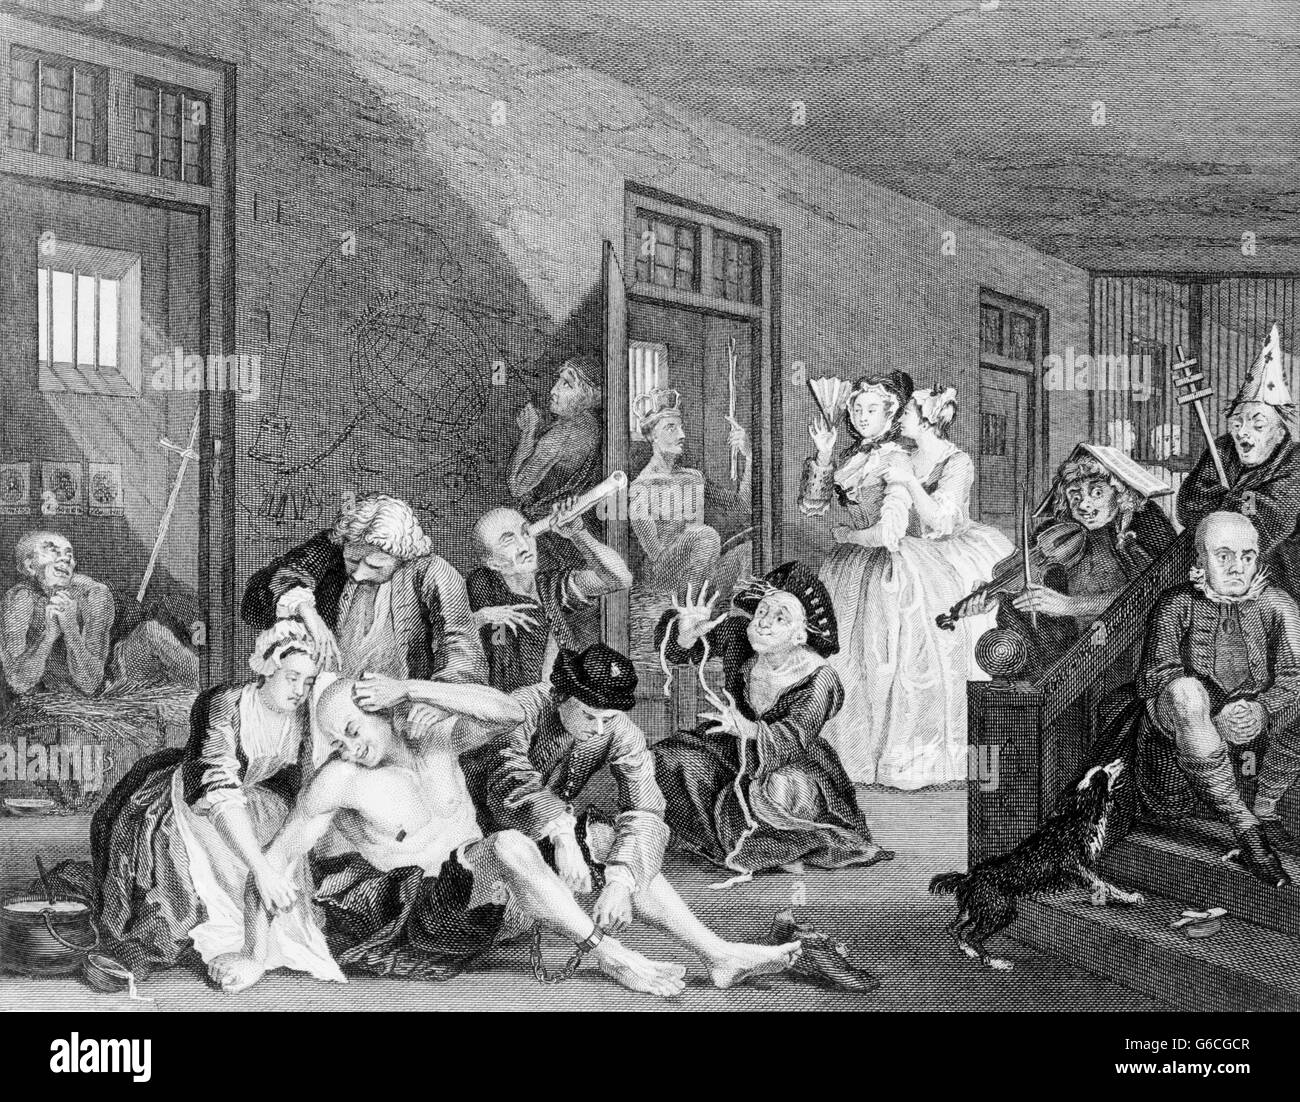 1730s THE MADHOUSE 18th CENTURY BEDLAM INSANE ASYLUM FROM A PAINTING BY WILLIAM HOGARTH CIRCA 1735 - Stock Image